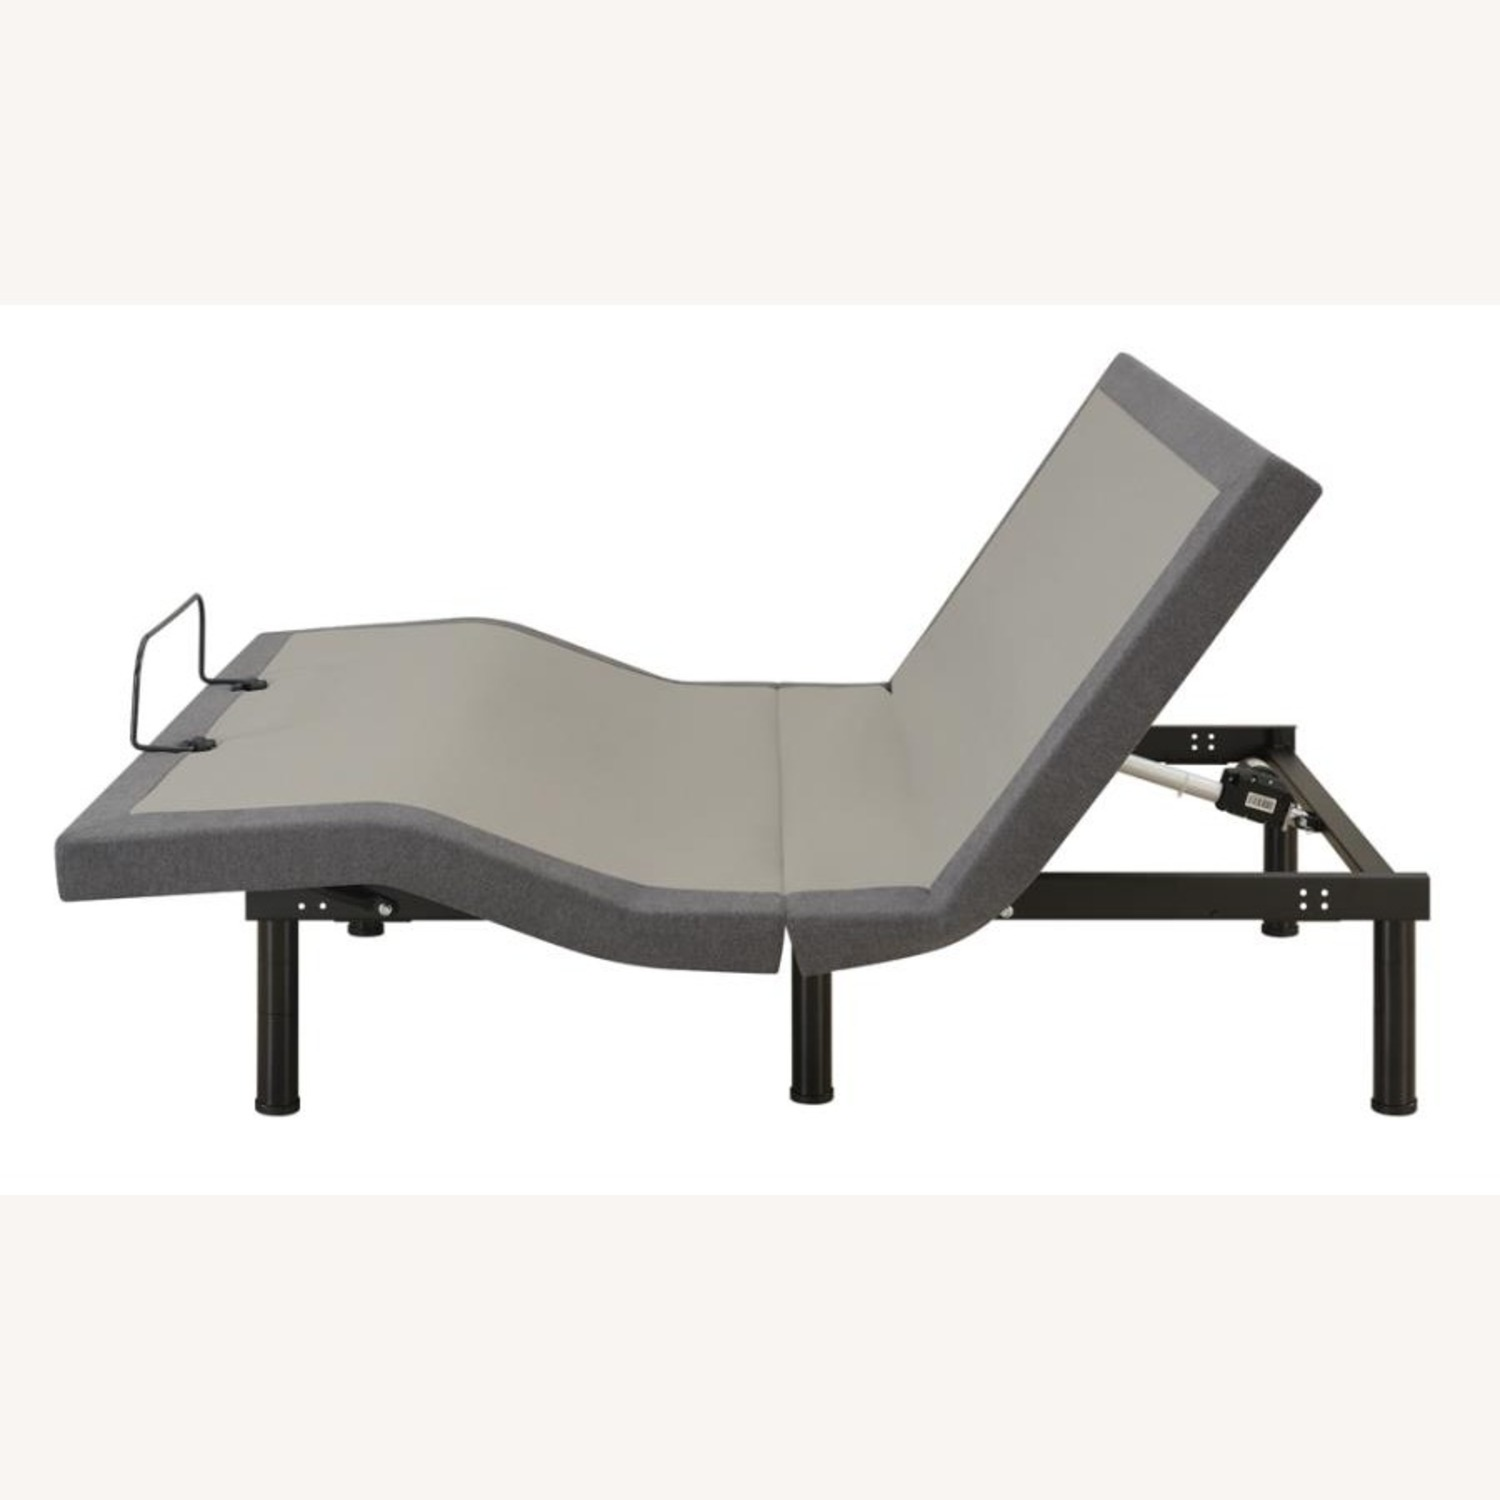 Adjustable King Bed Base In Grey Fabric - image-2